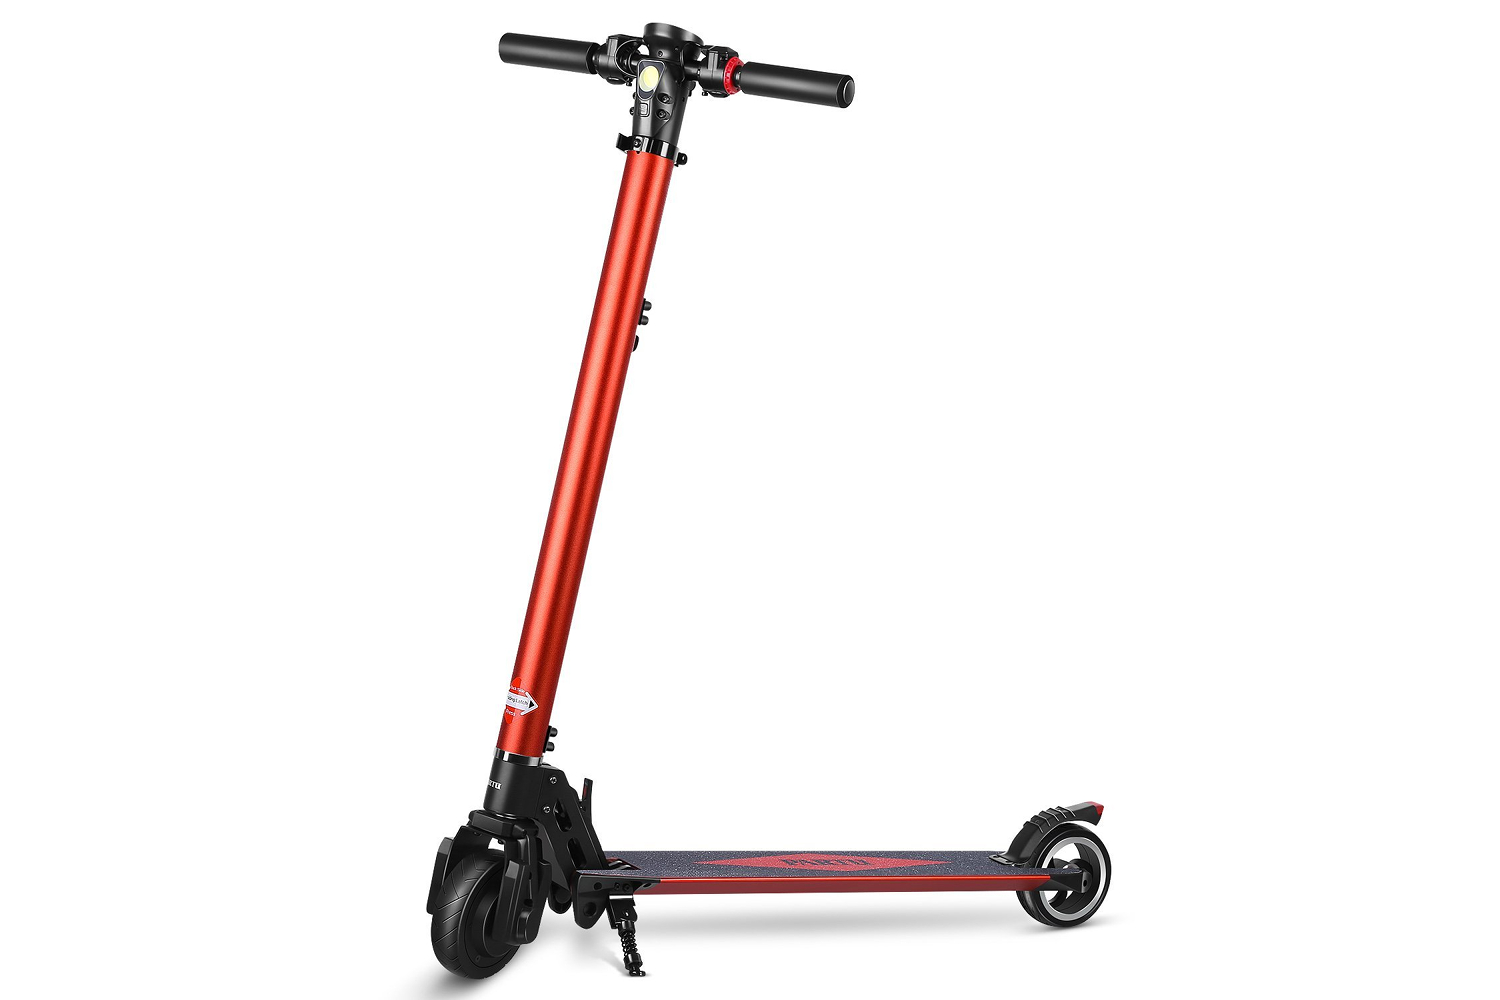 Partu Electric Scooter Review Partu E Scooter Price